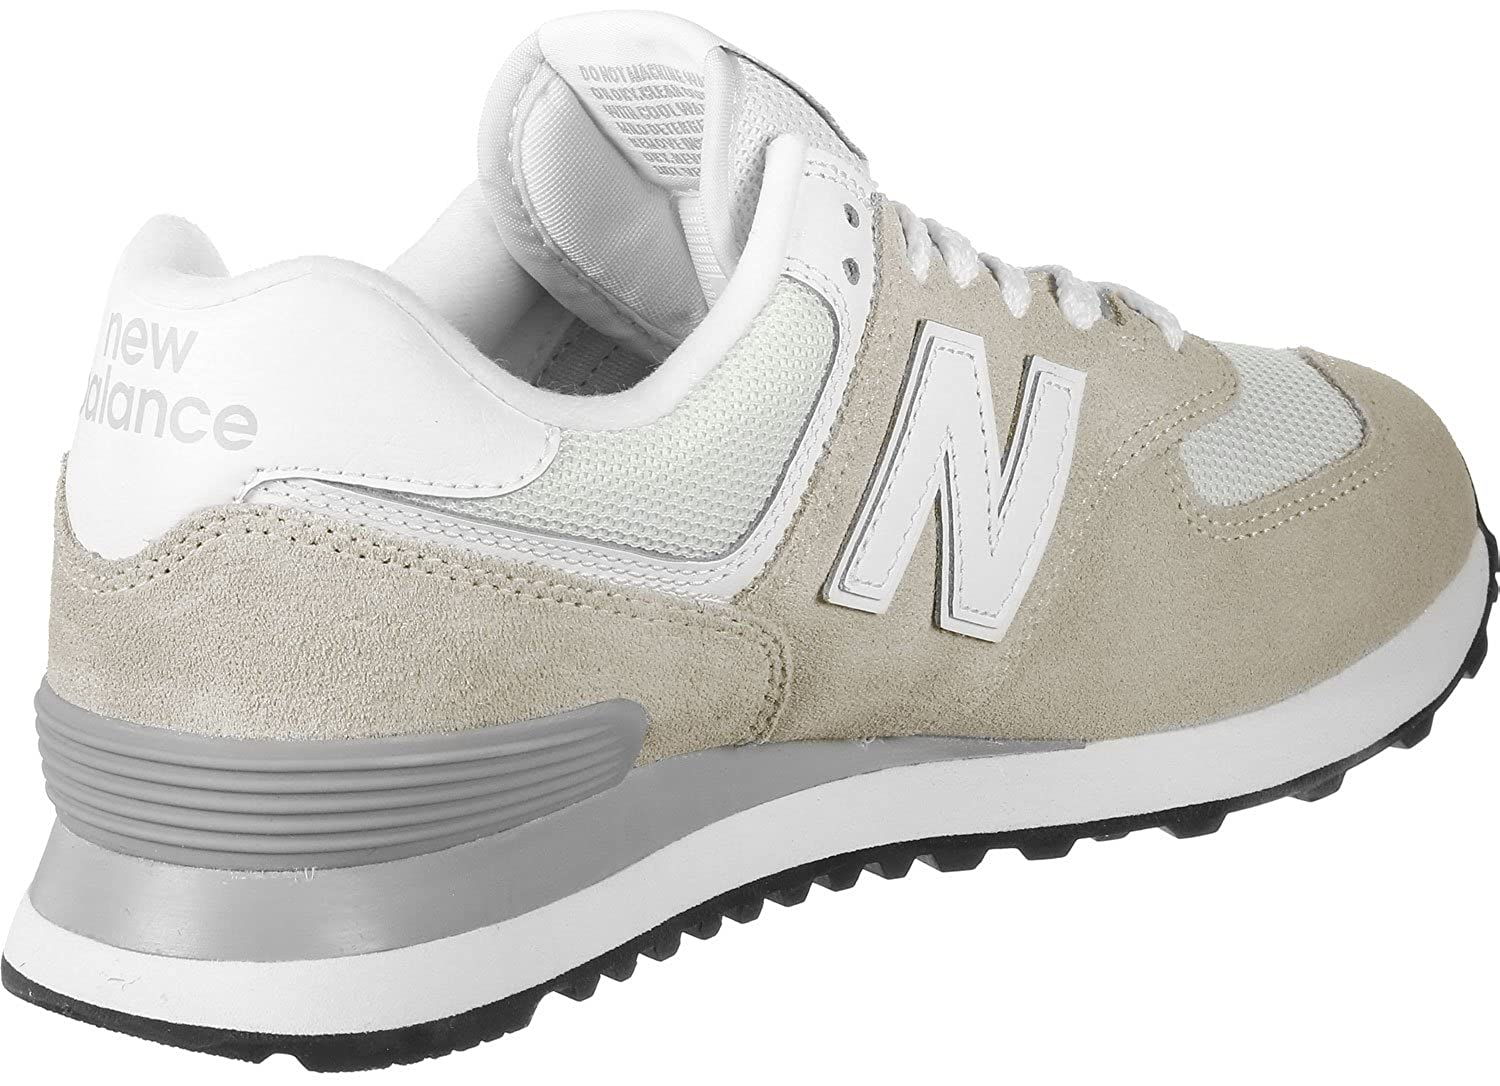 3af20c759f29c Amazon.com: New Balance 574 Womens Sneakers White: Clothing